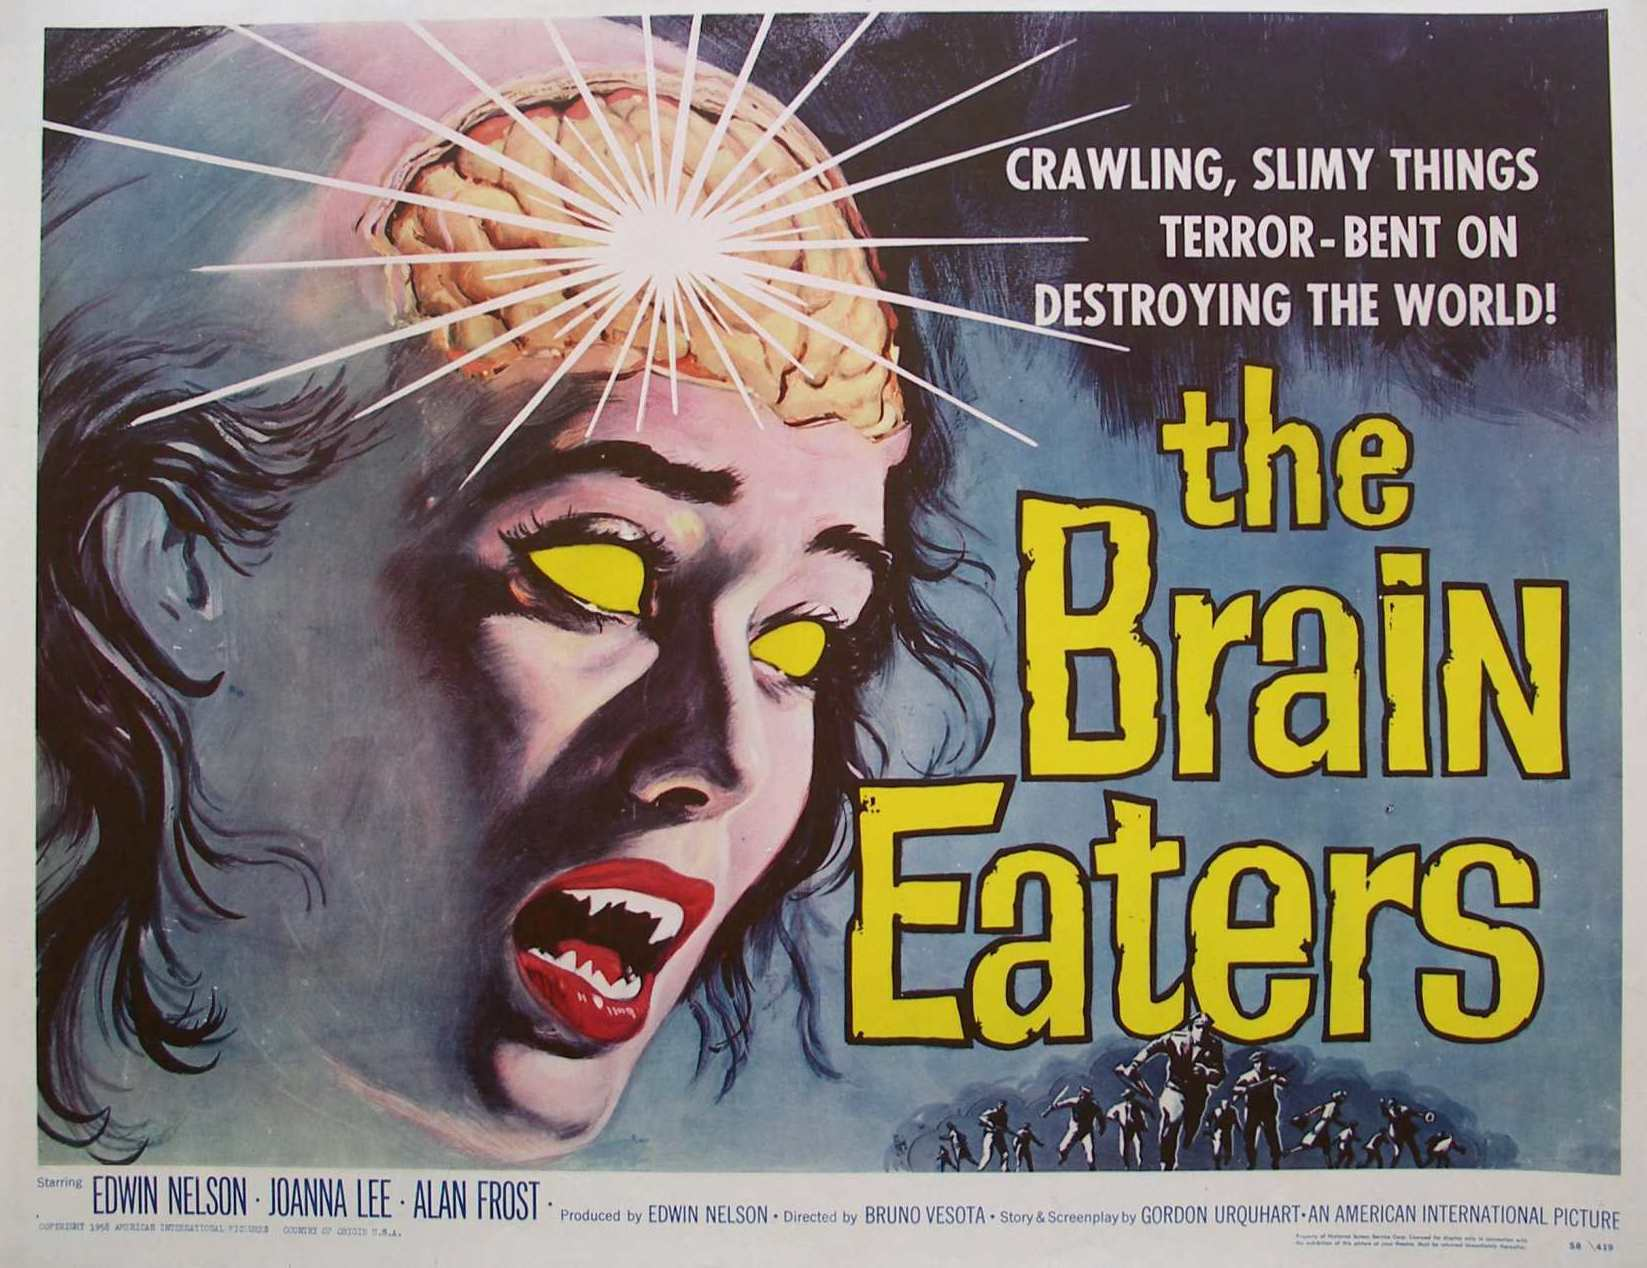 Old Retro Horror Film Posters - Brain Eaters